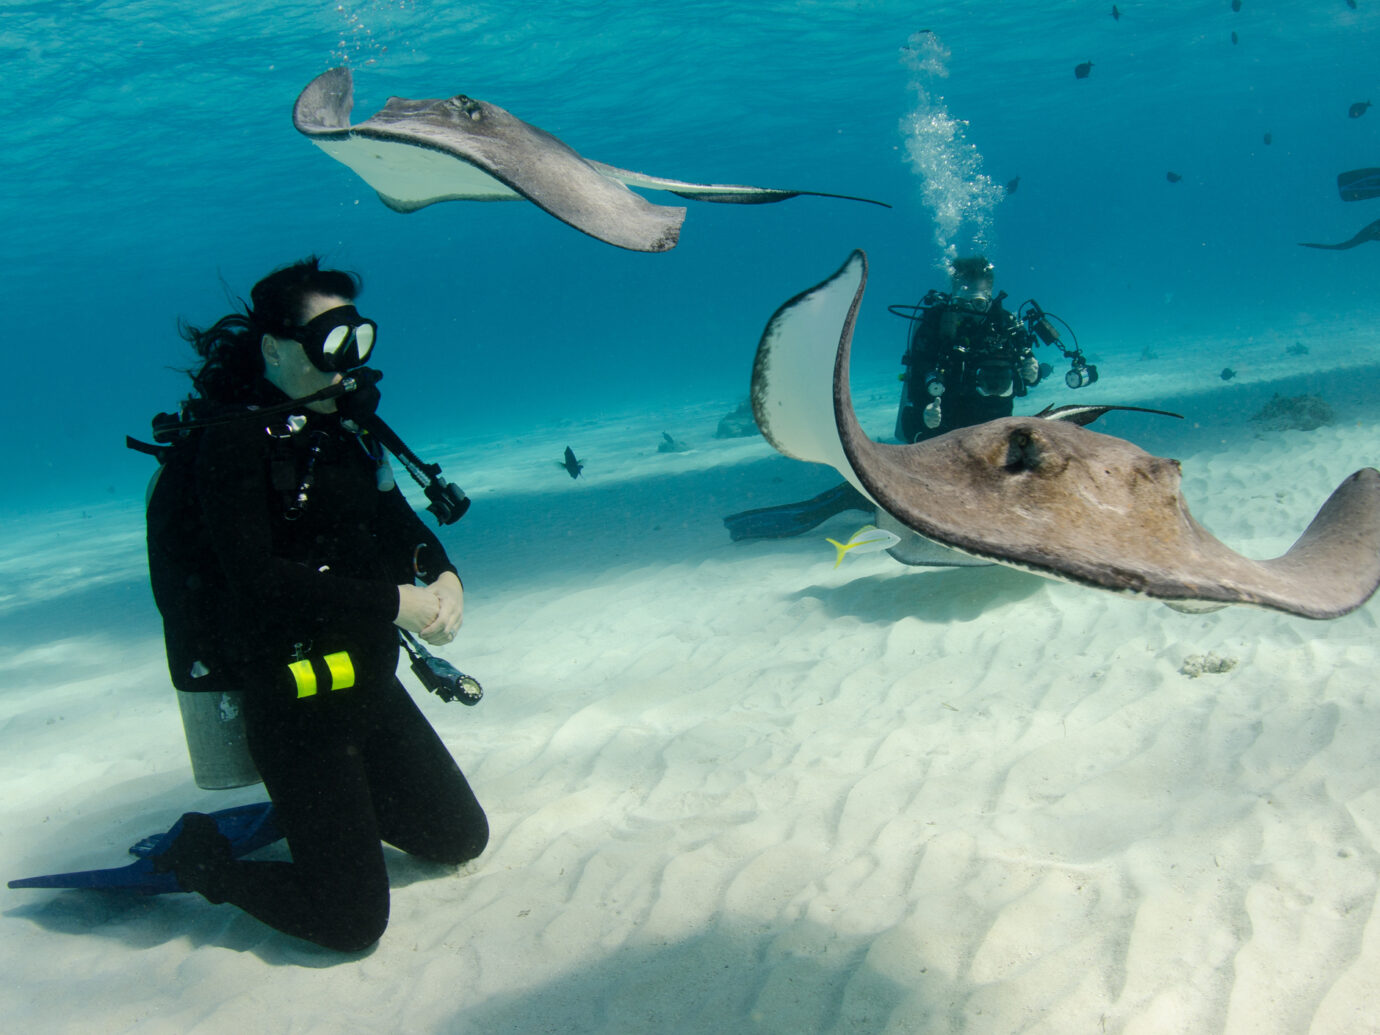 Stringrays bypass this diver in search of the next diver with food. Grand Cayman.